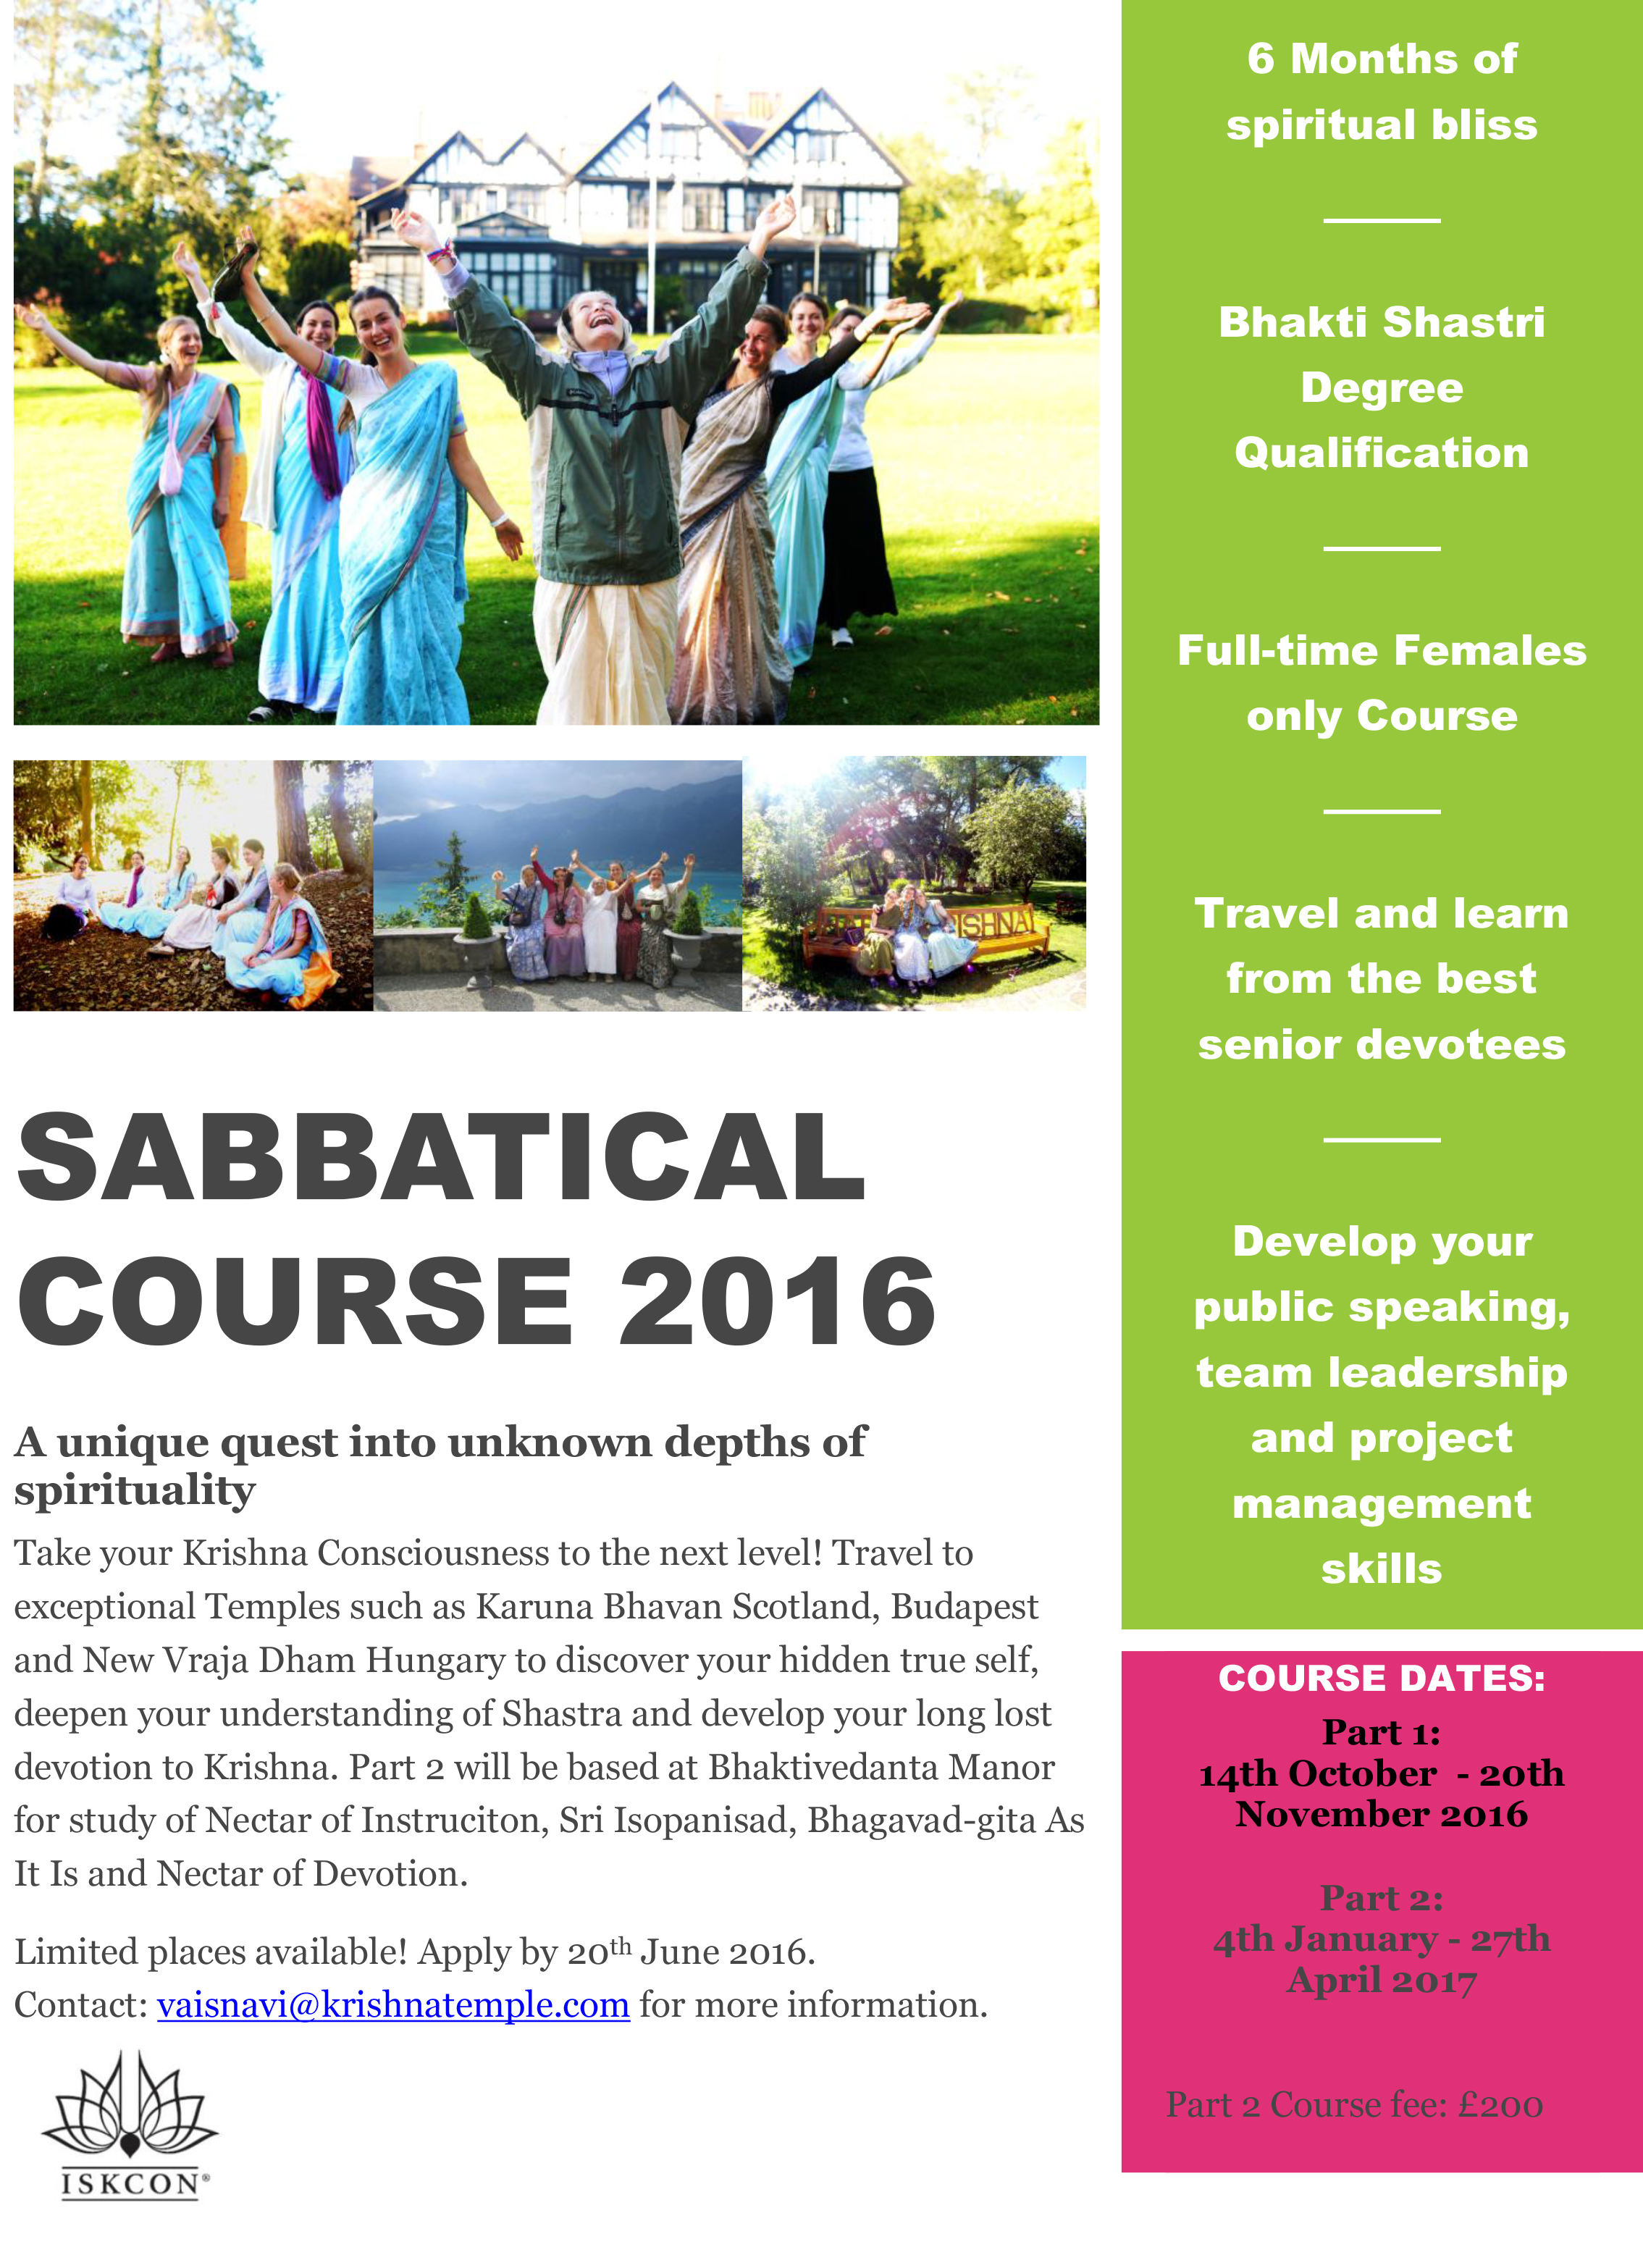 Sabbatical Course ladies 2016 Bhaktivedanta Manor